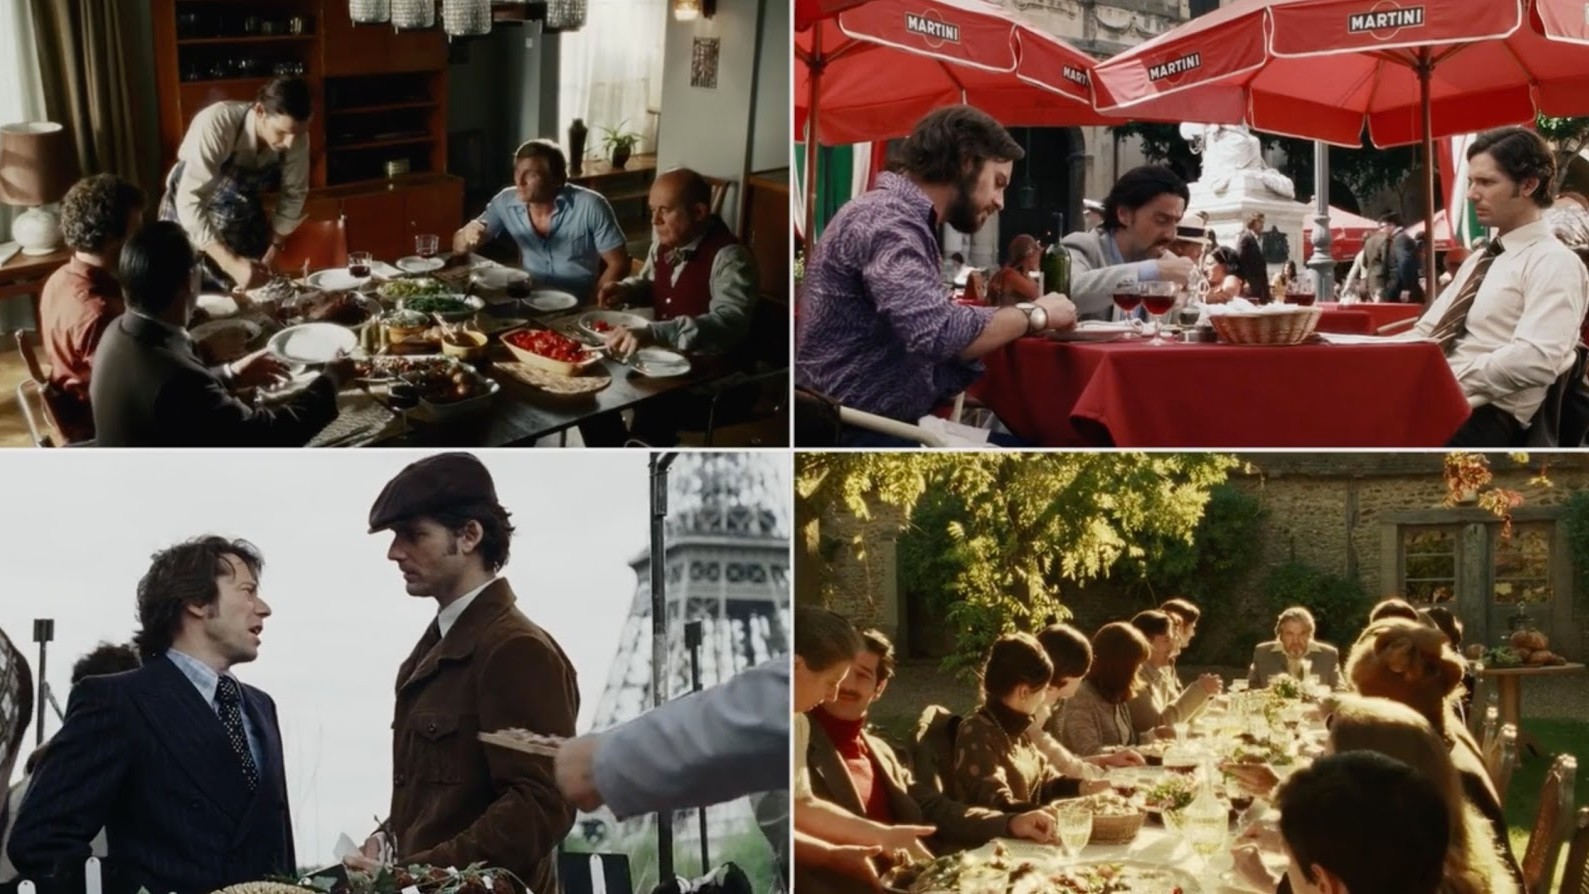 feast on steven spielberg s best family dinner scenes creators you ll be full of movie trivia after watching ldquosteven spielberg setting the table rdquo